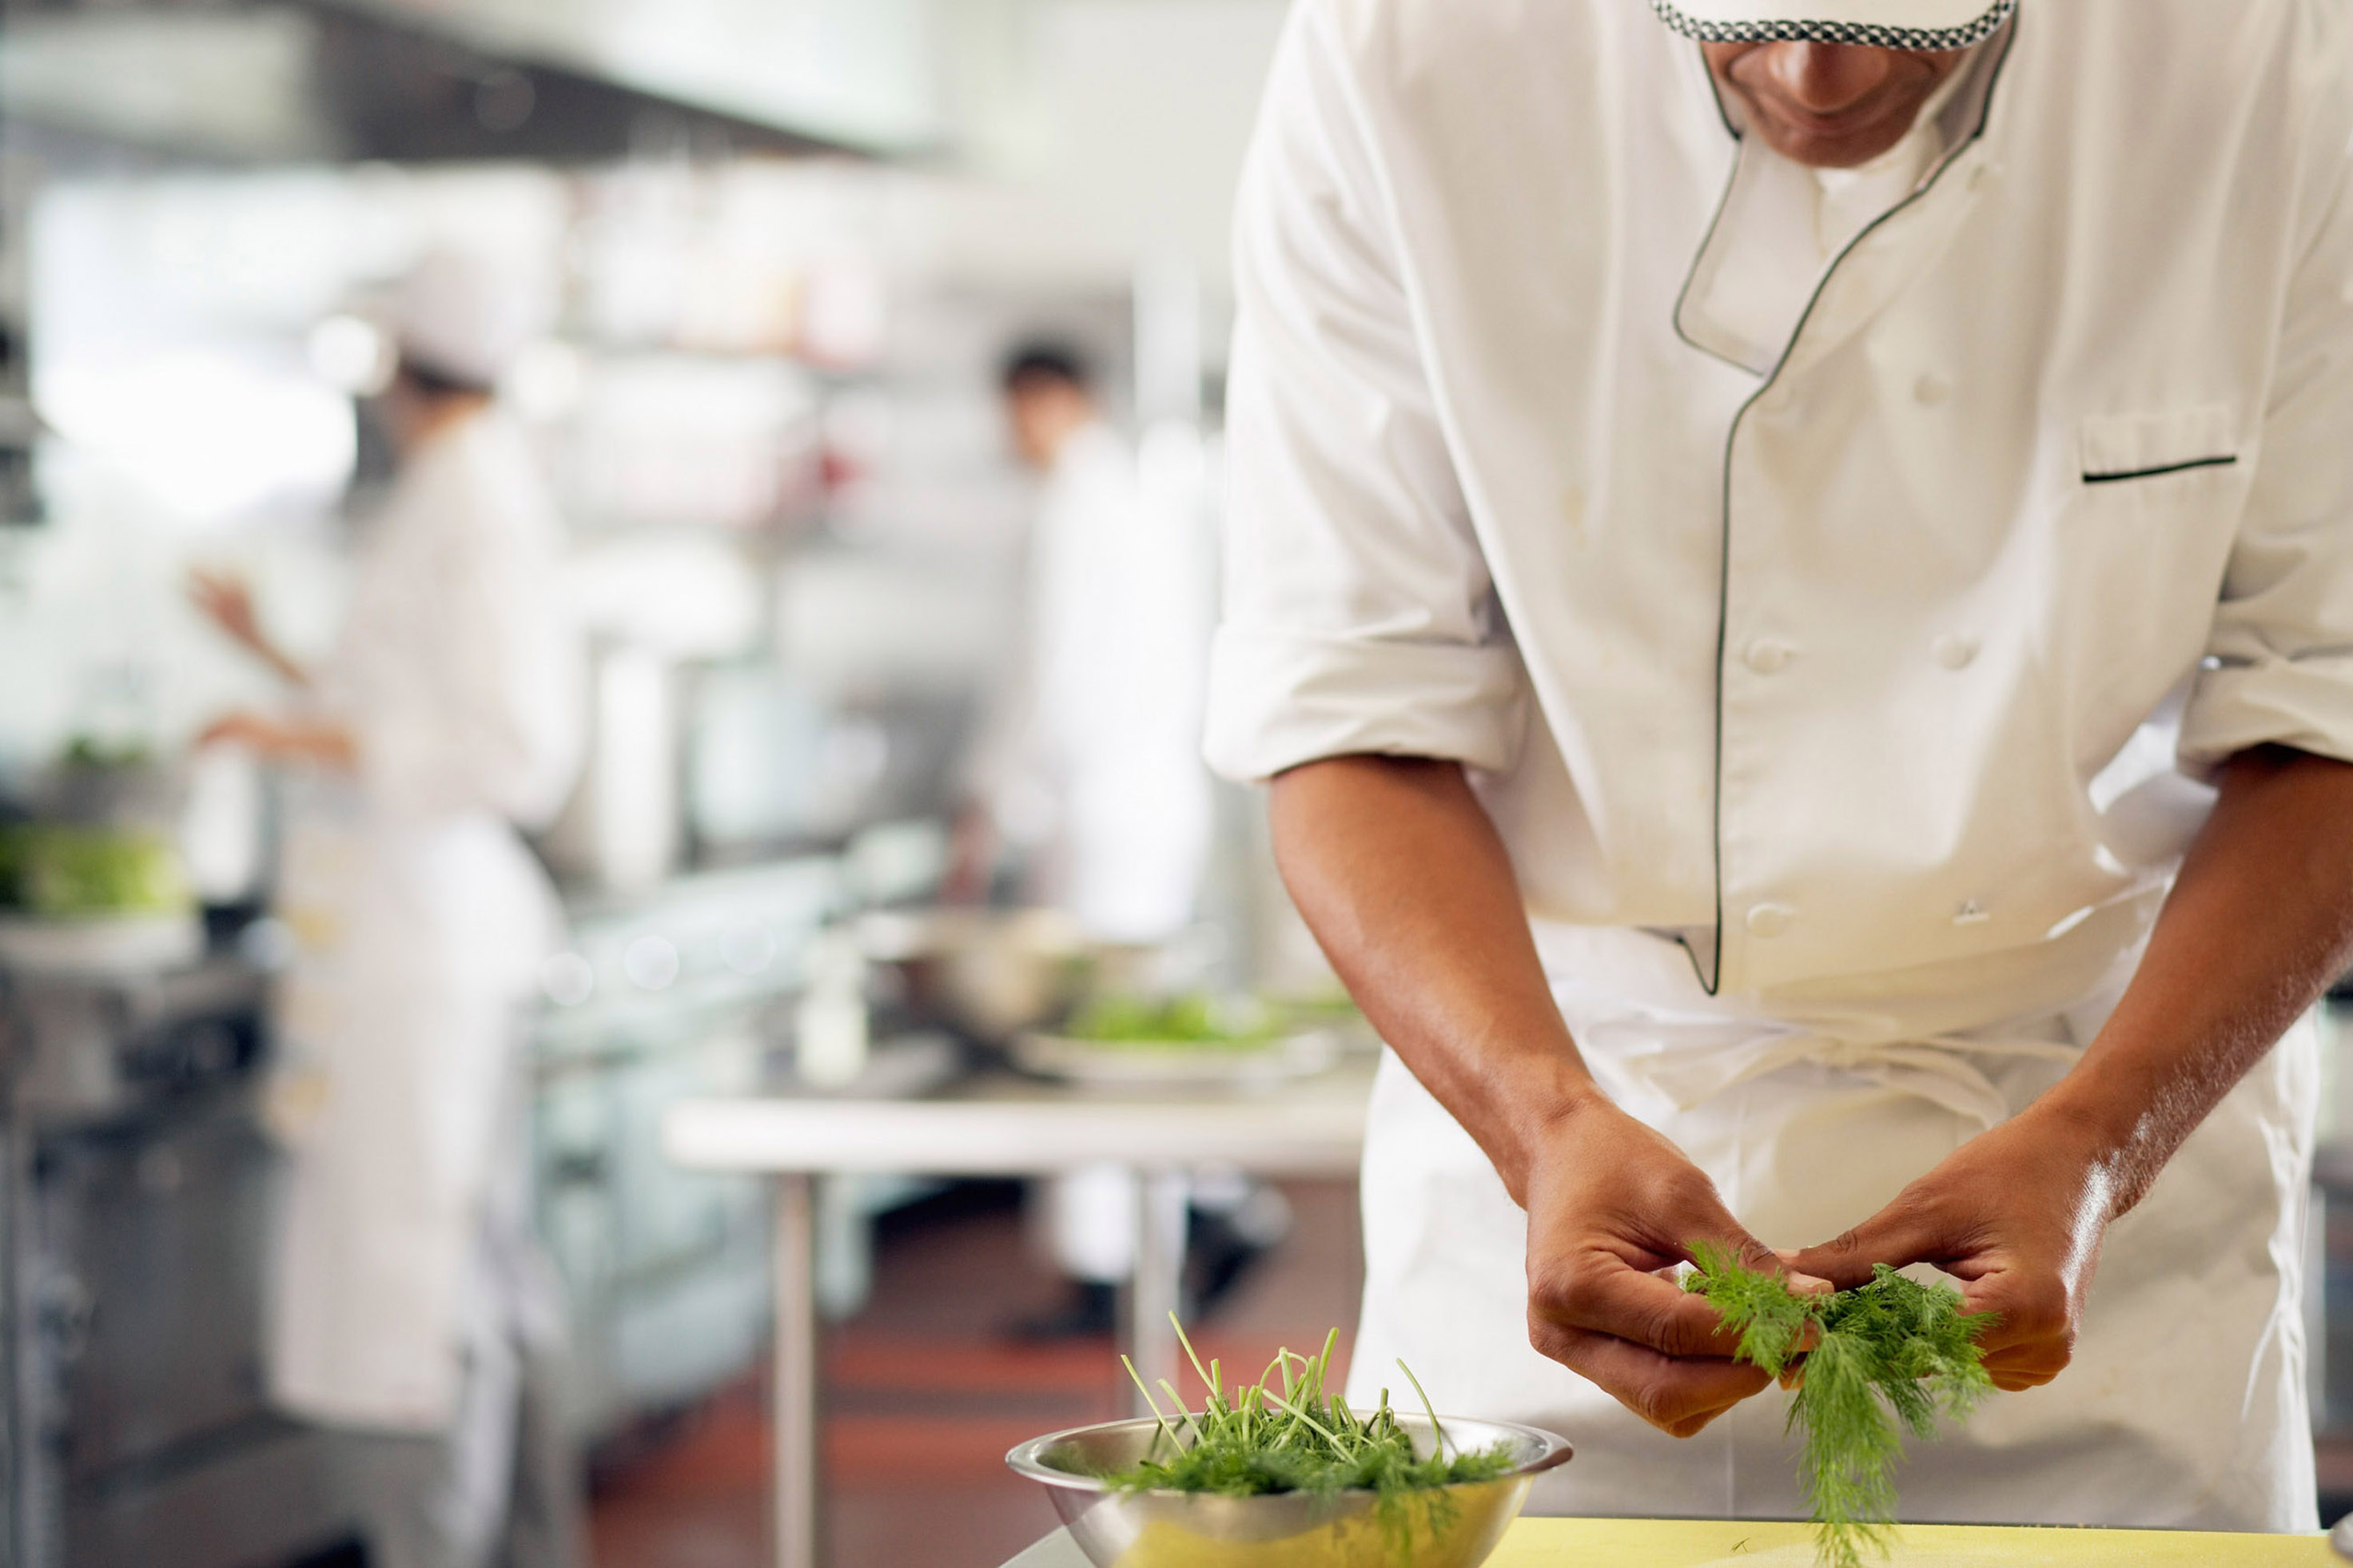 professional kitchen skills course - The Training Terminal